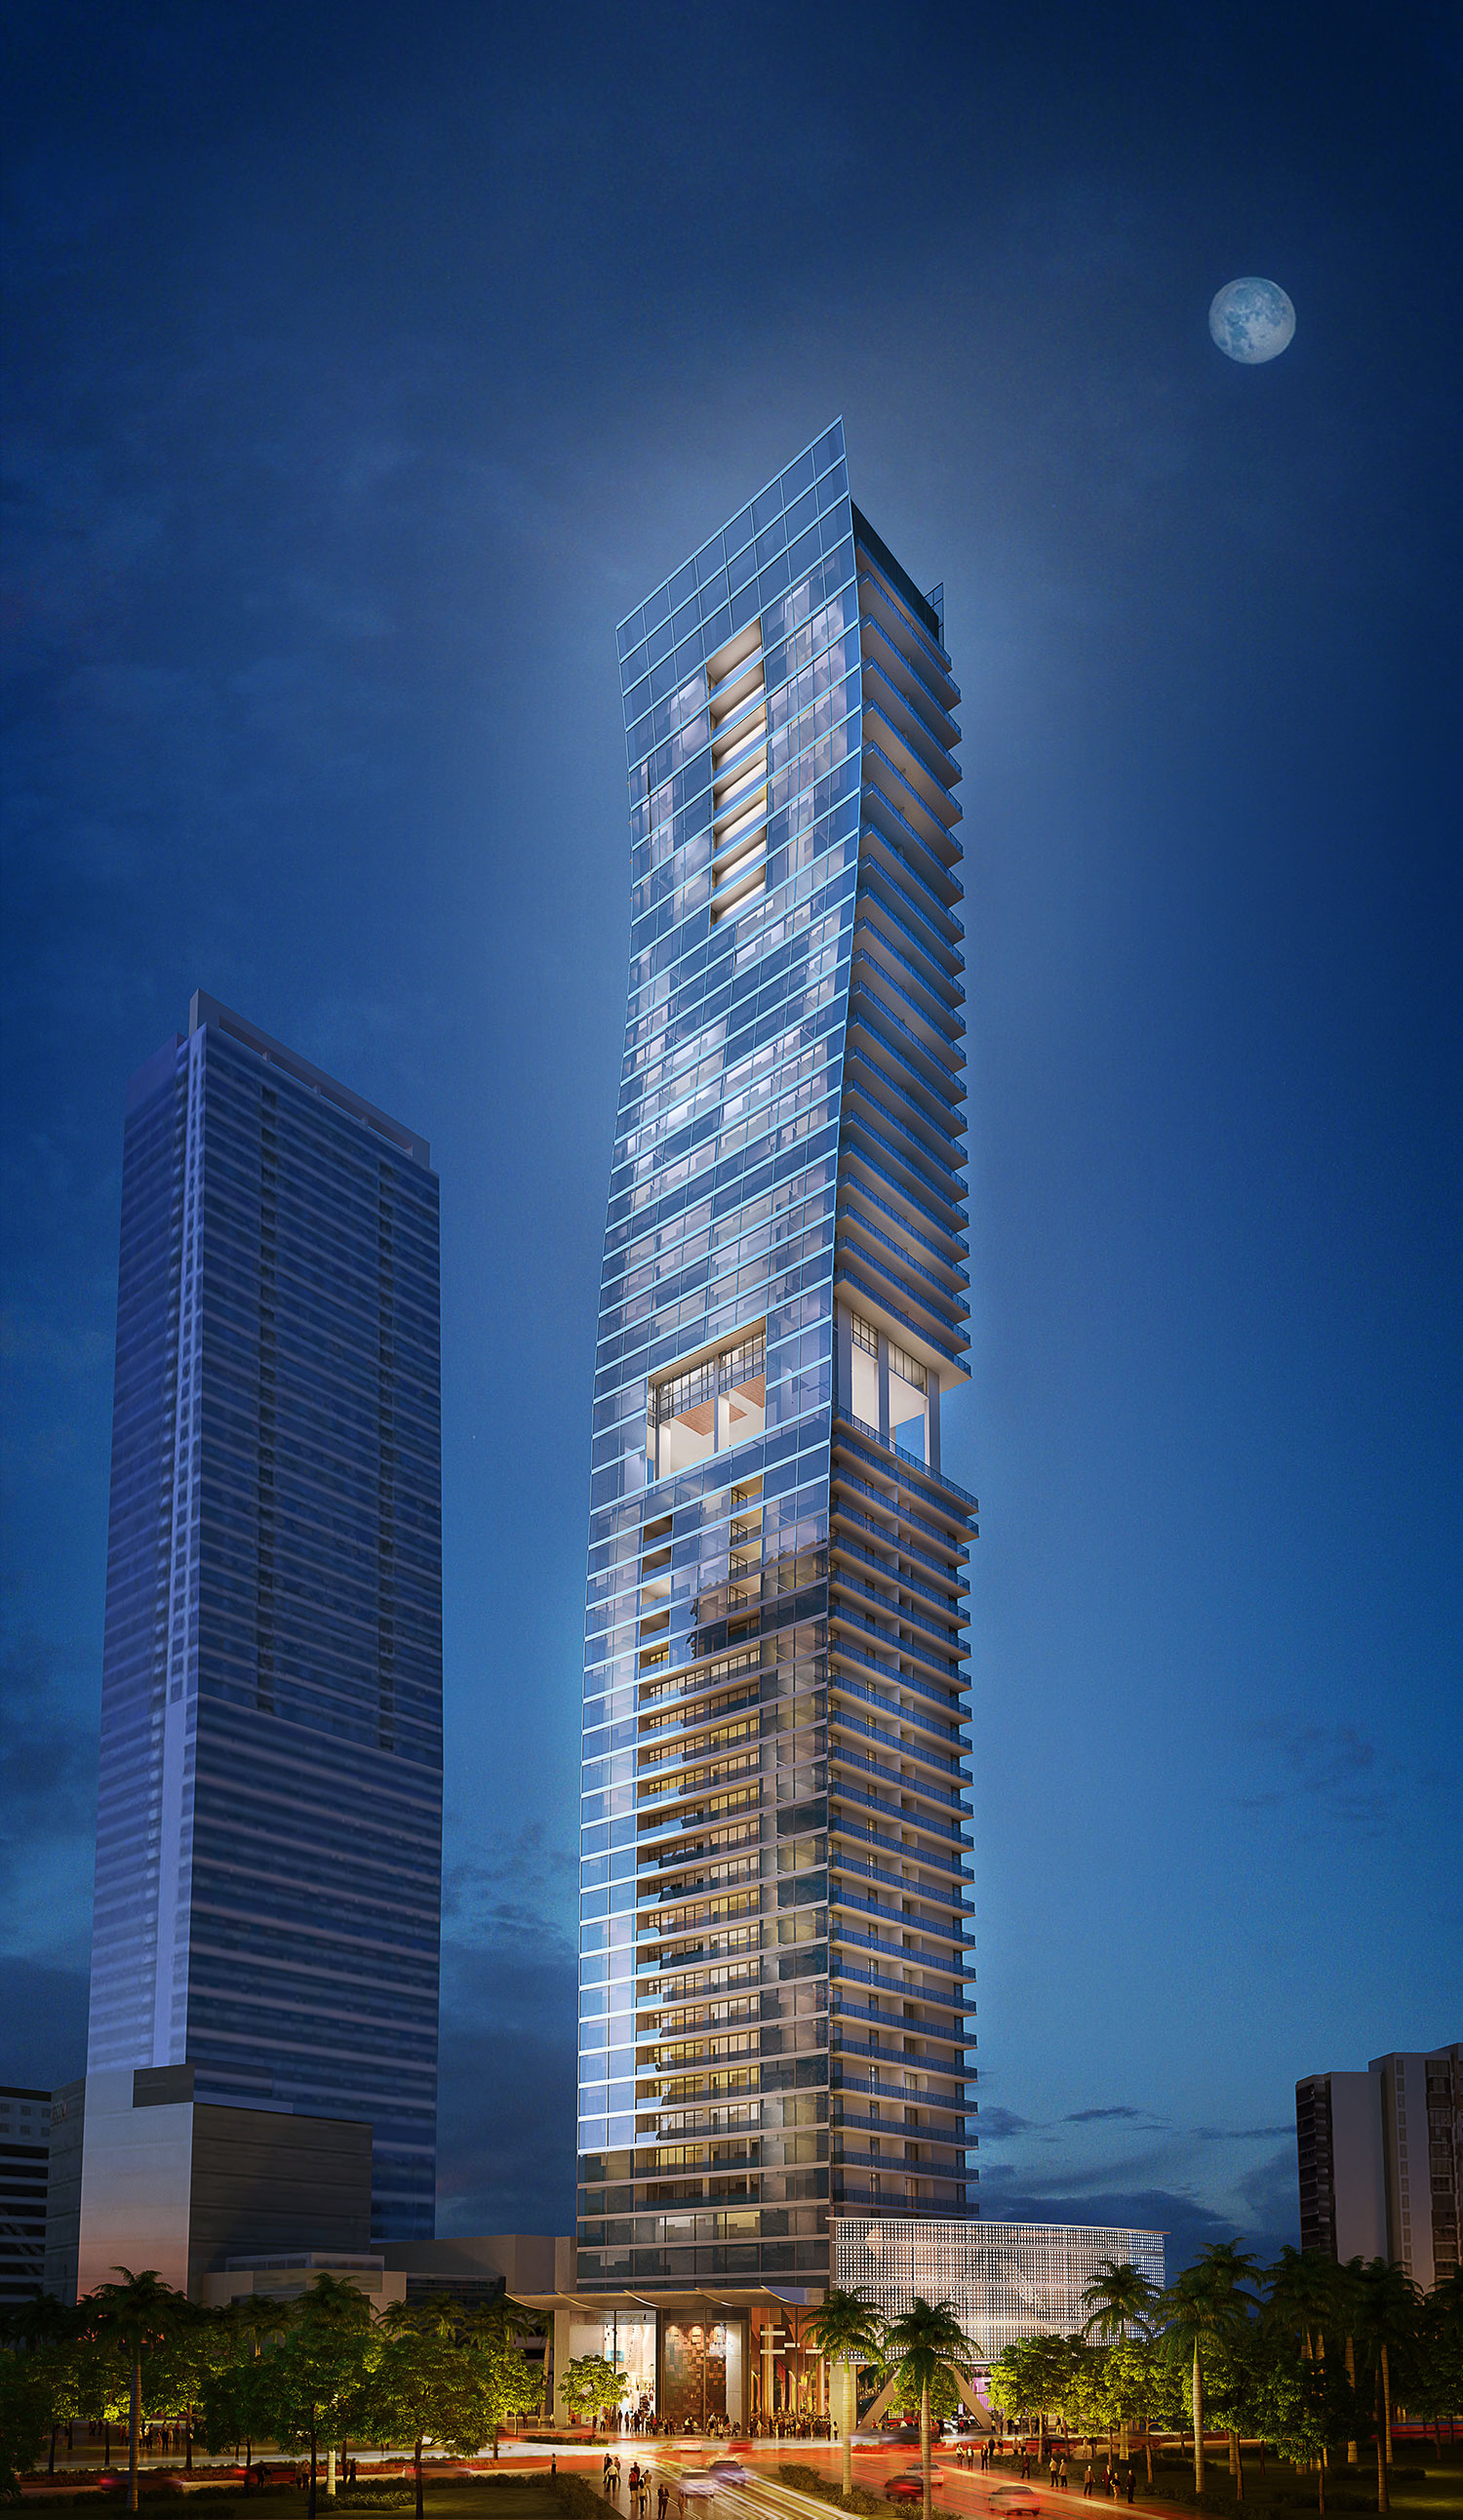 Brickell at Miami 1441 Brickell Avenue, Suite 1510, Florida 33131